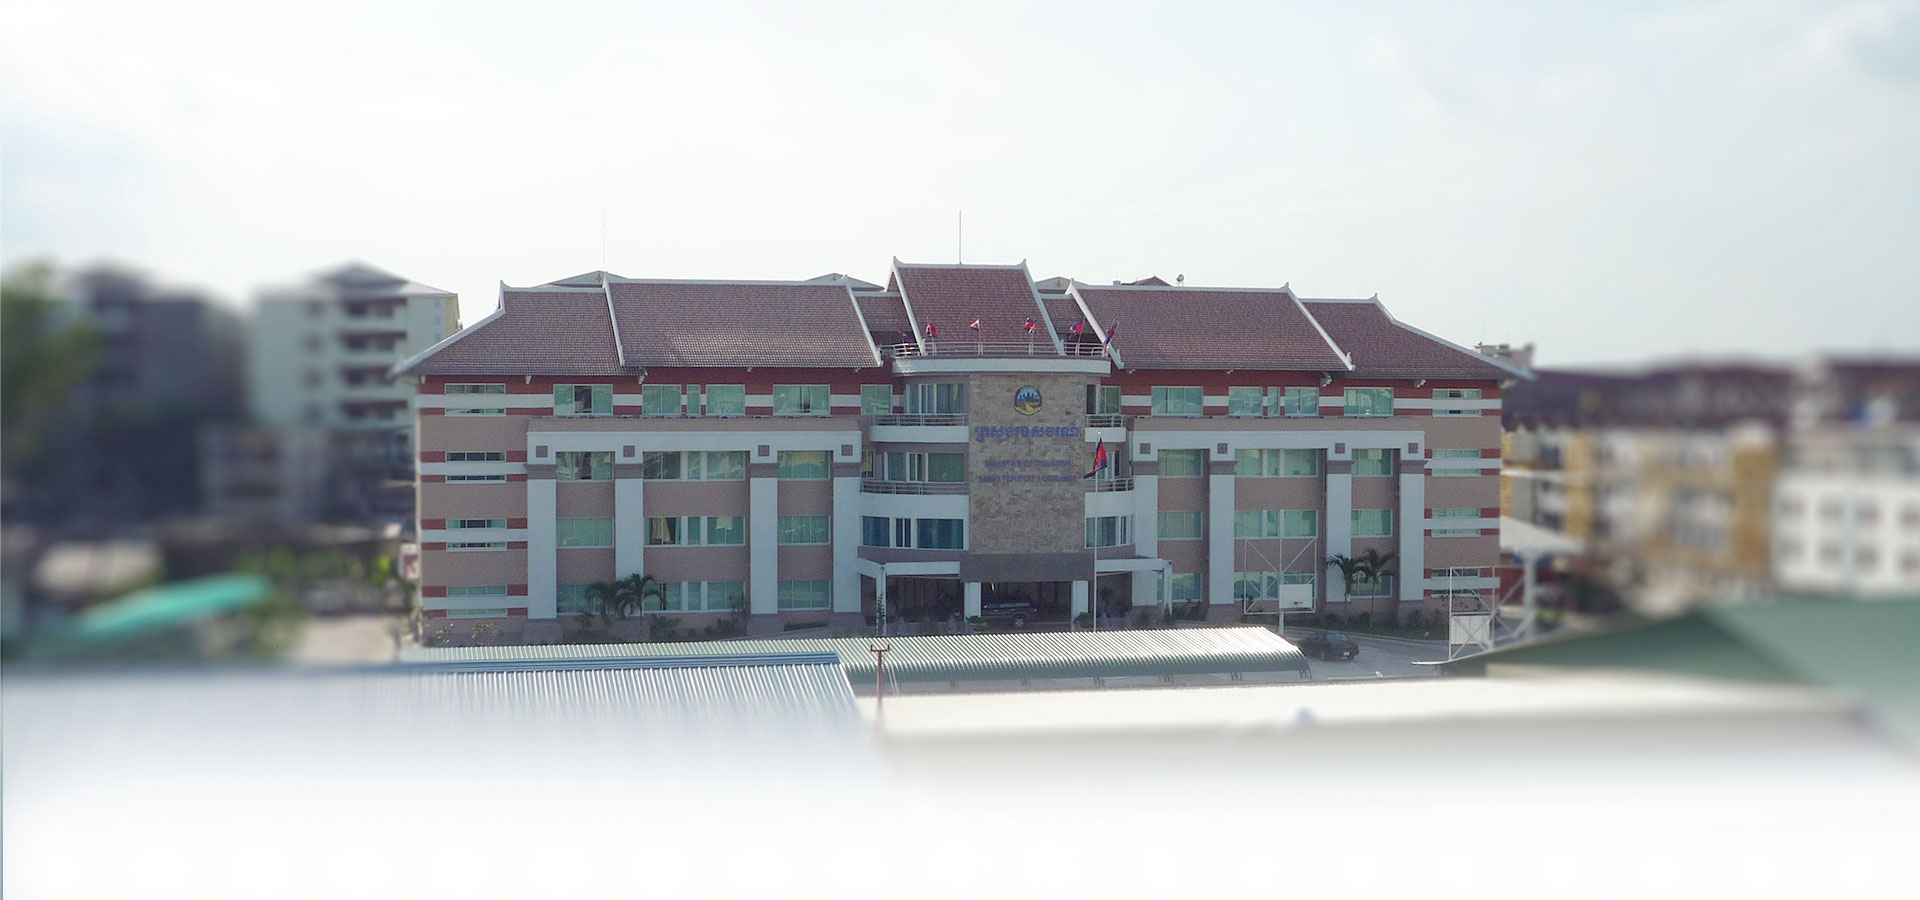 The Ministry of Cambodia